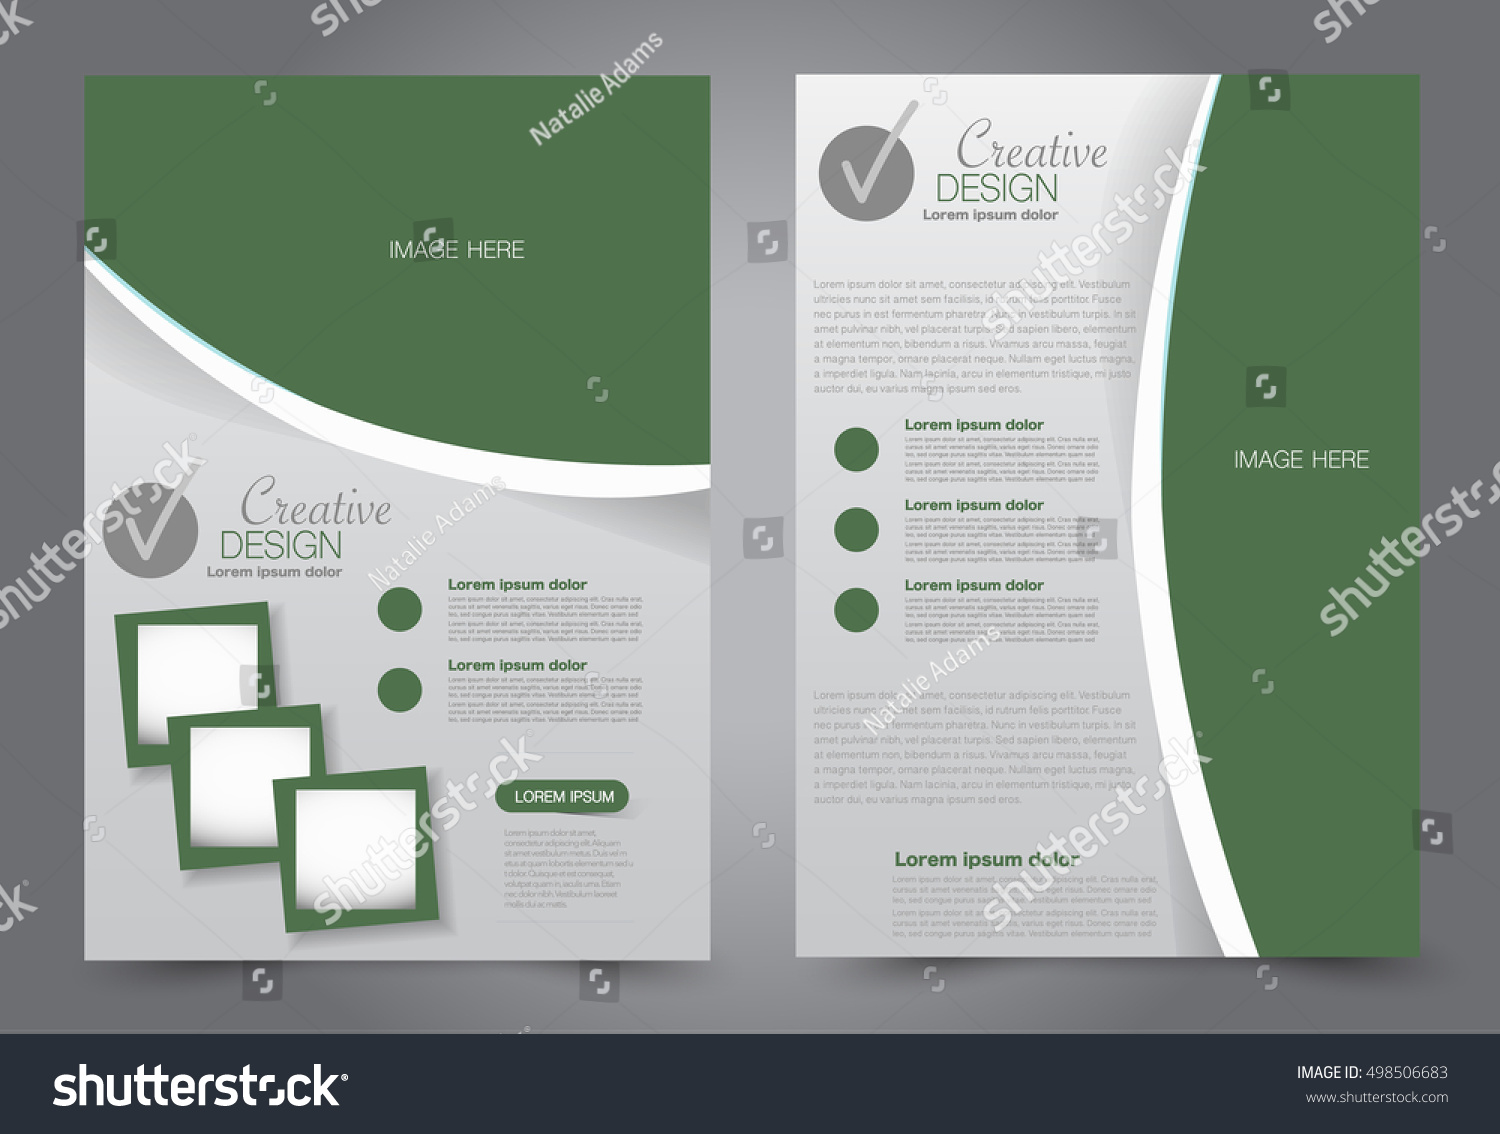 Brochure template business flyer annual report stock for Editable brochure templates